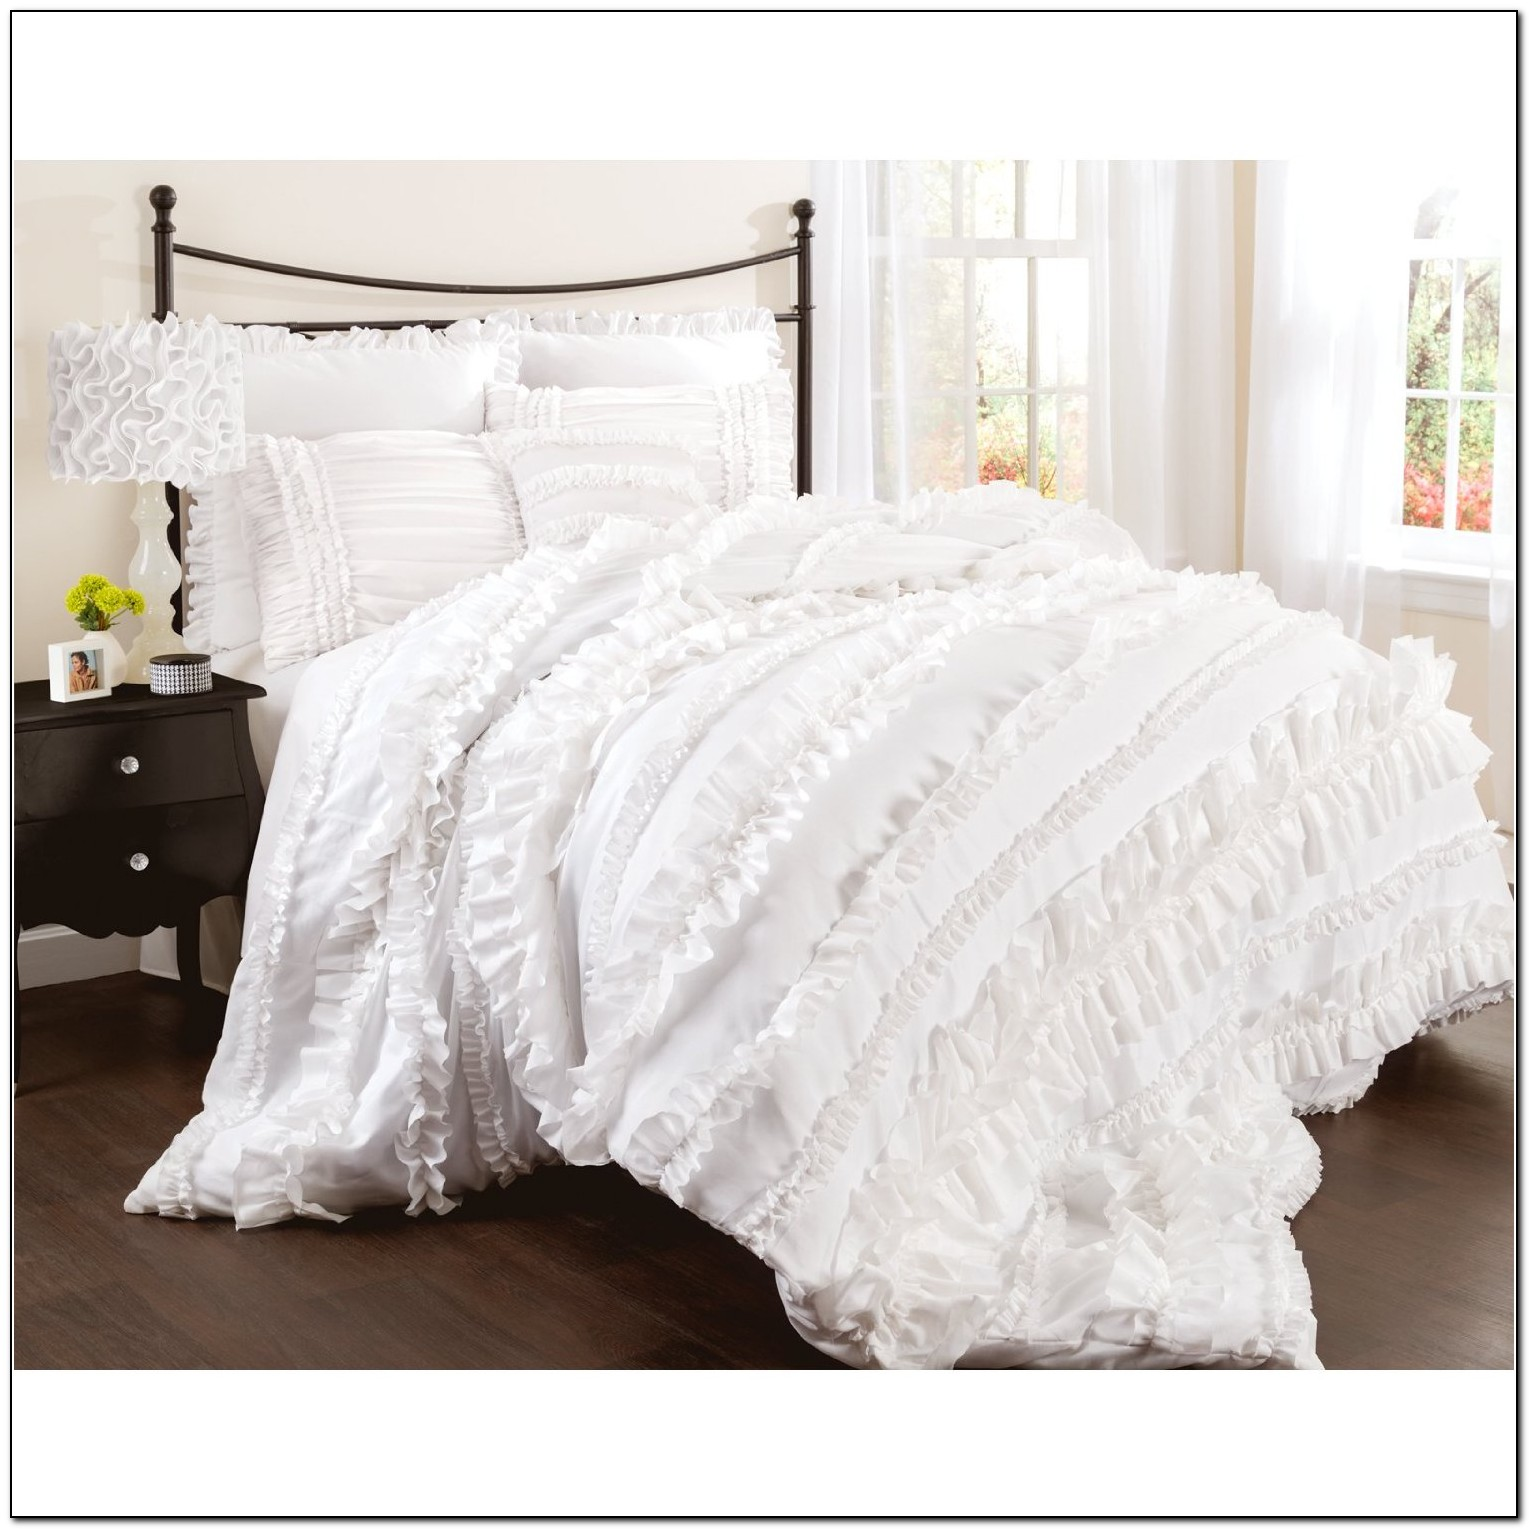 White Ruffle Bedding Queen